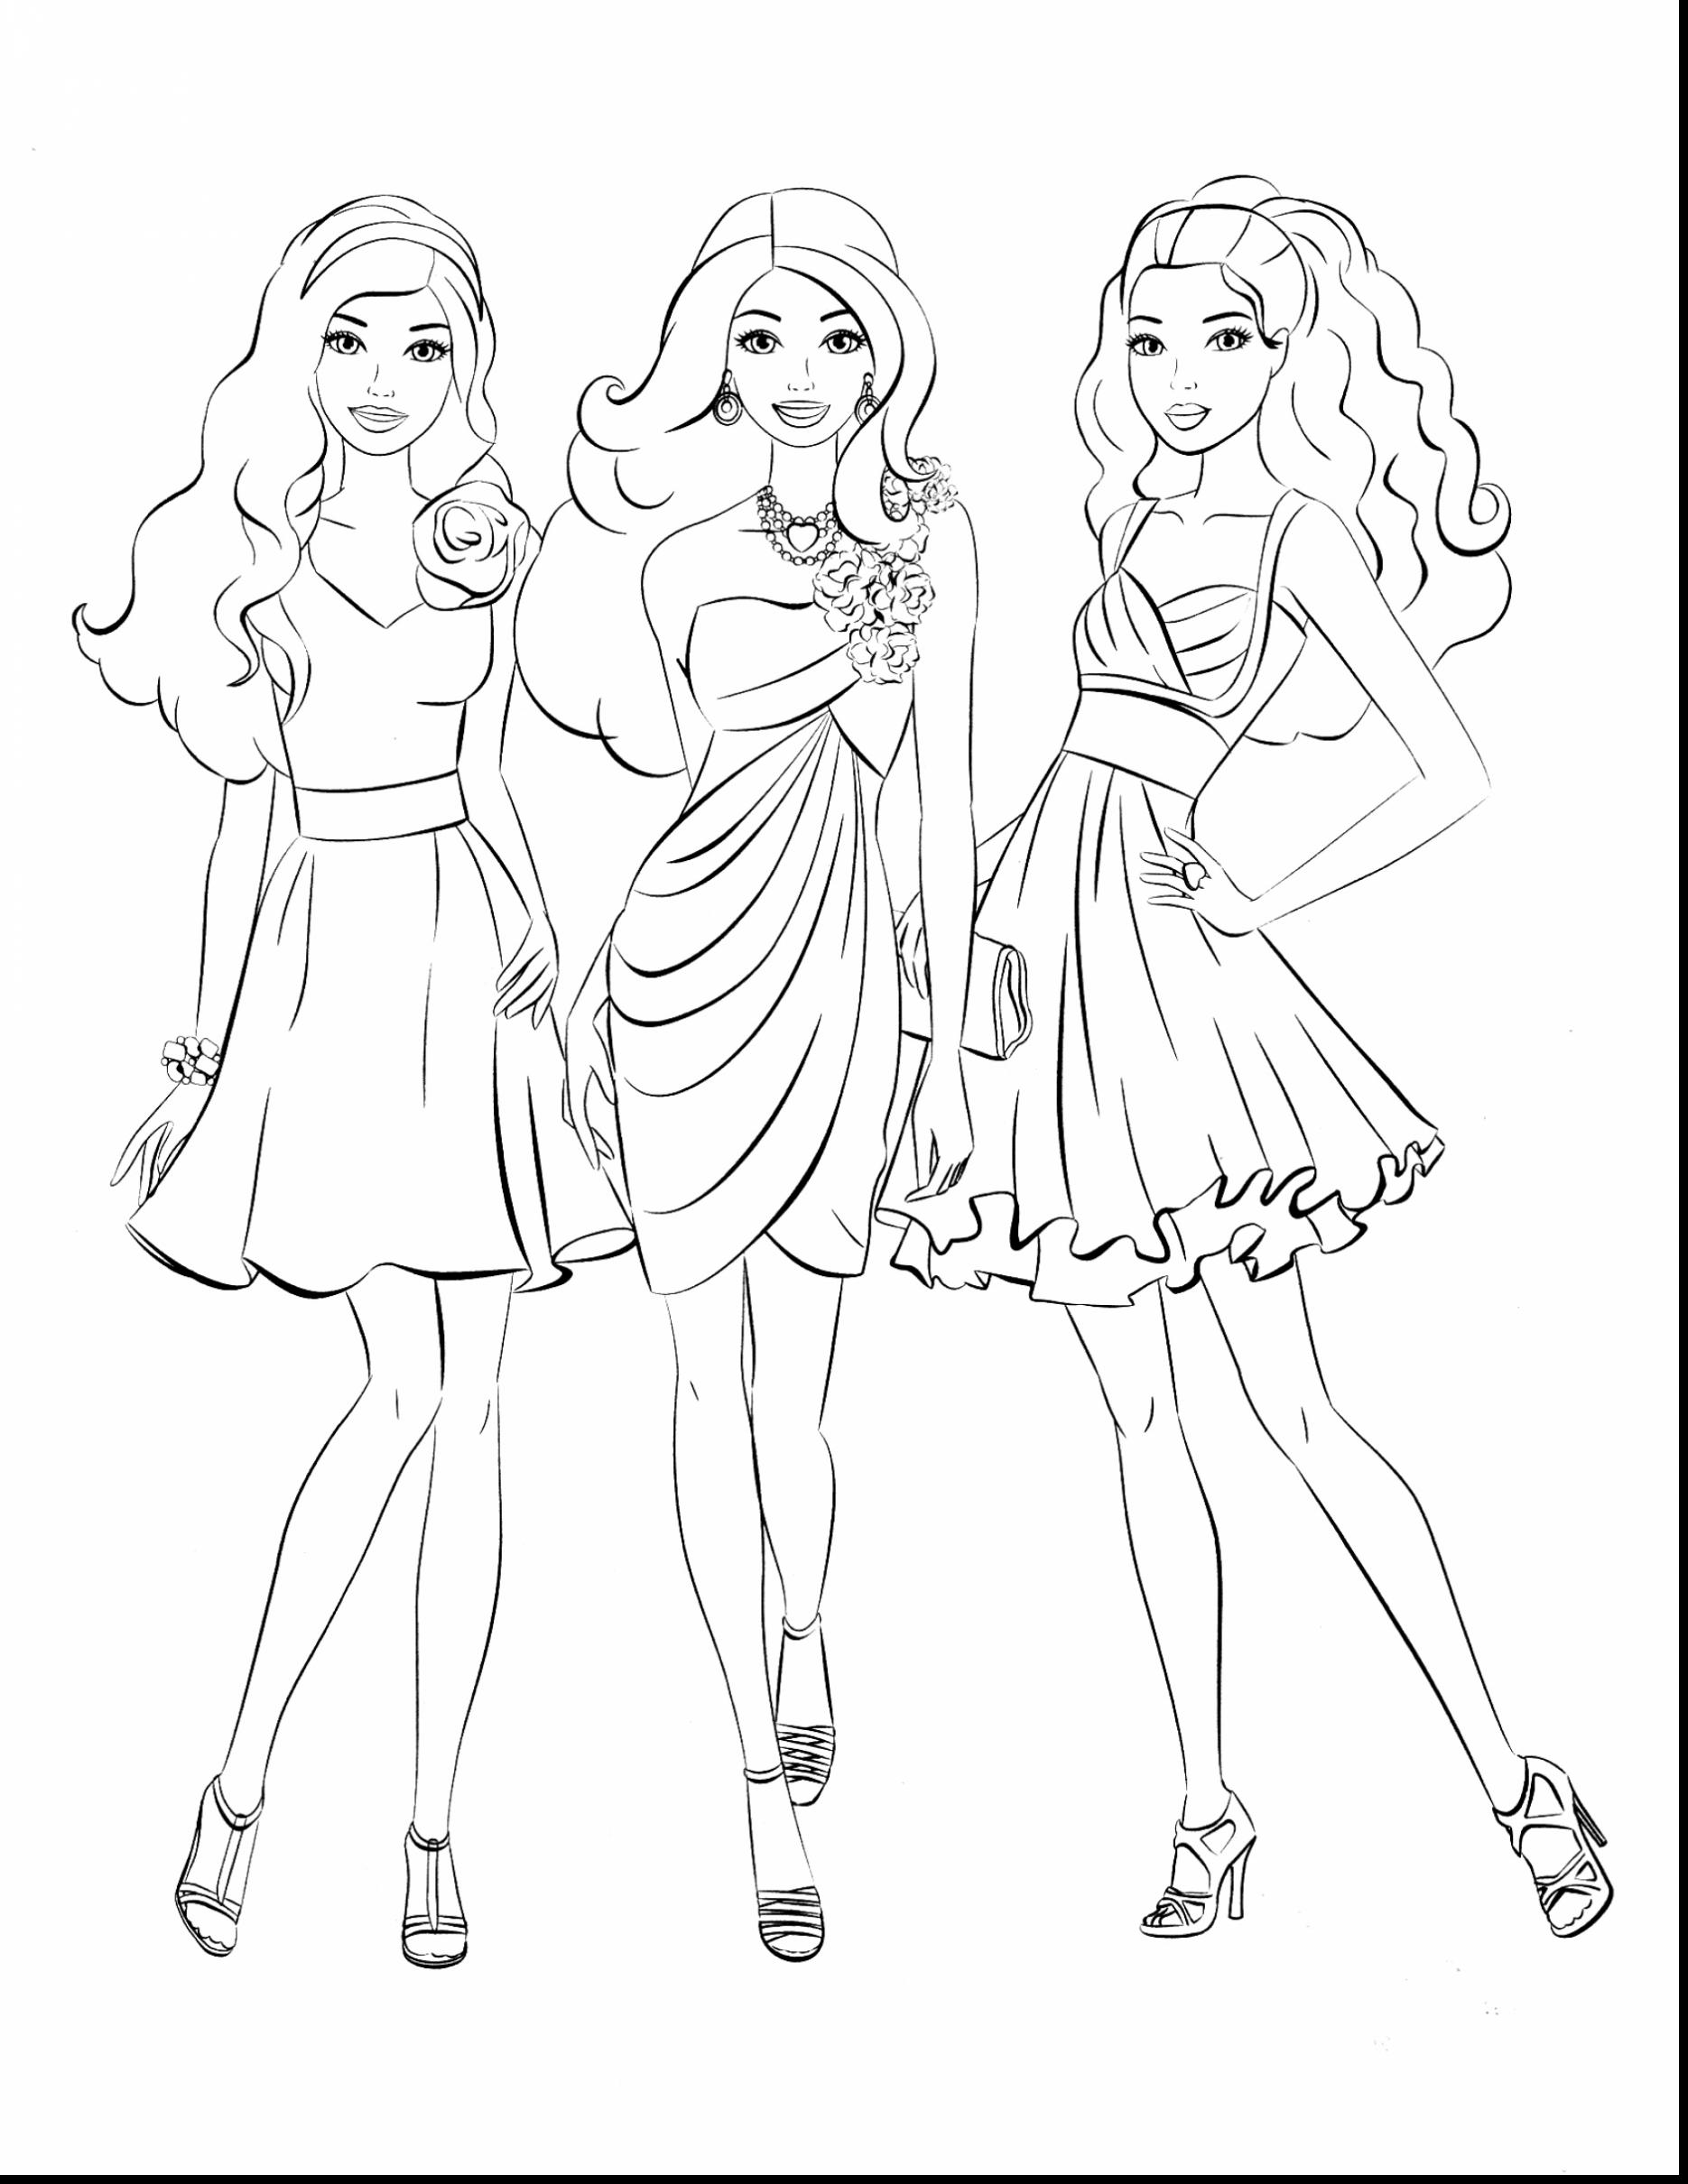 Barbie Ballerina Coloring Pages at GetDrawings.com | Free for ...